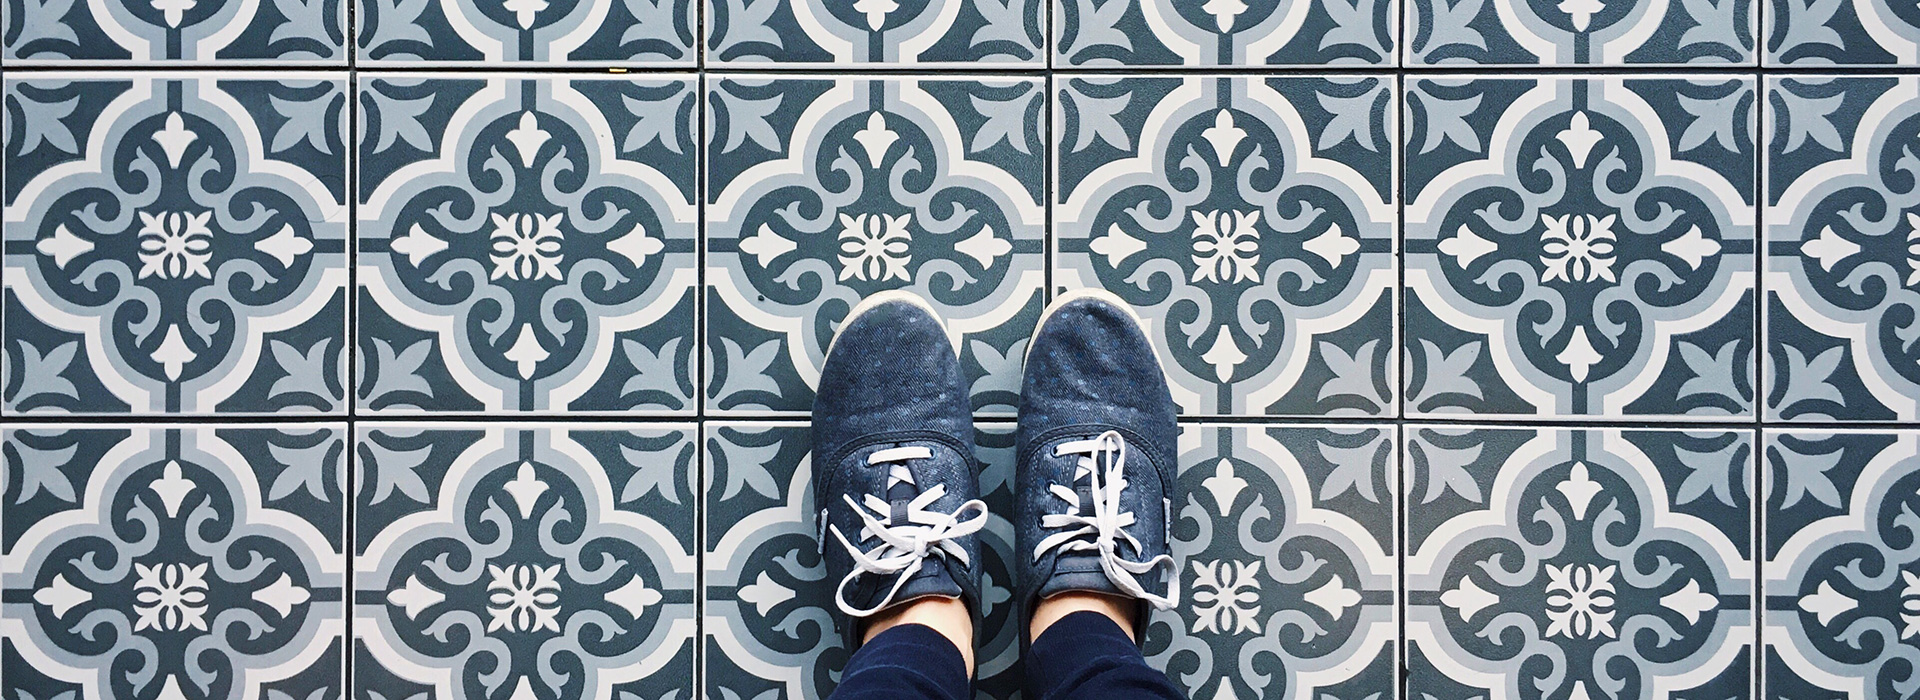 6 Unique Tile Patterns For Your Home America S Floor Source